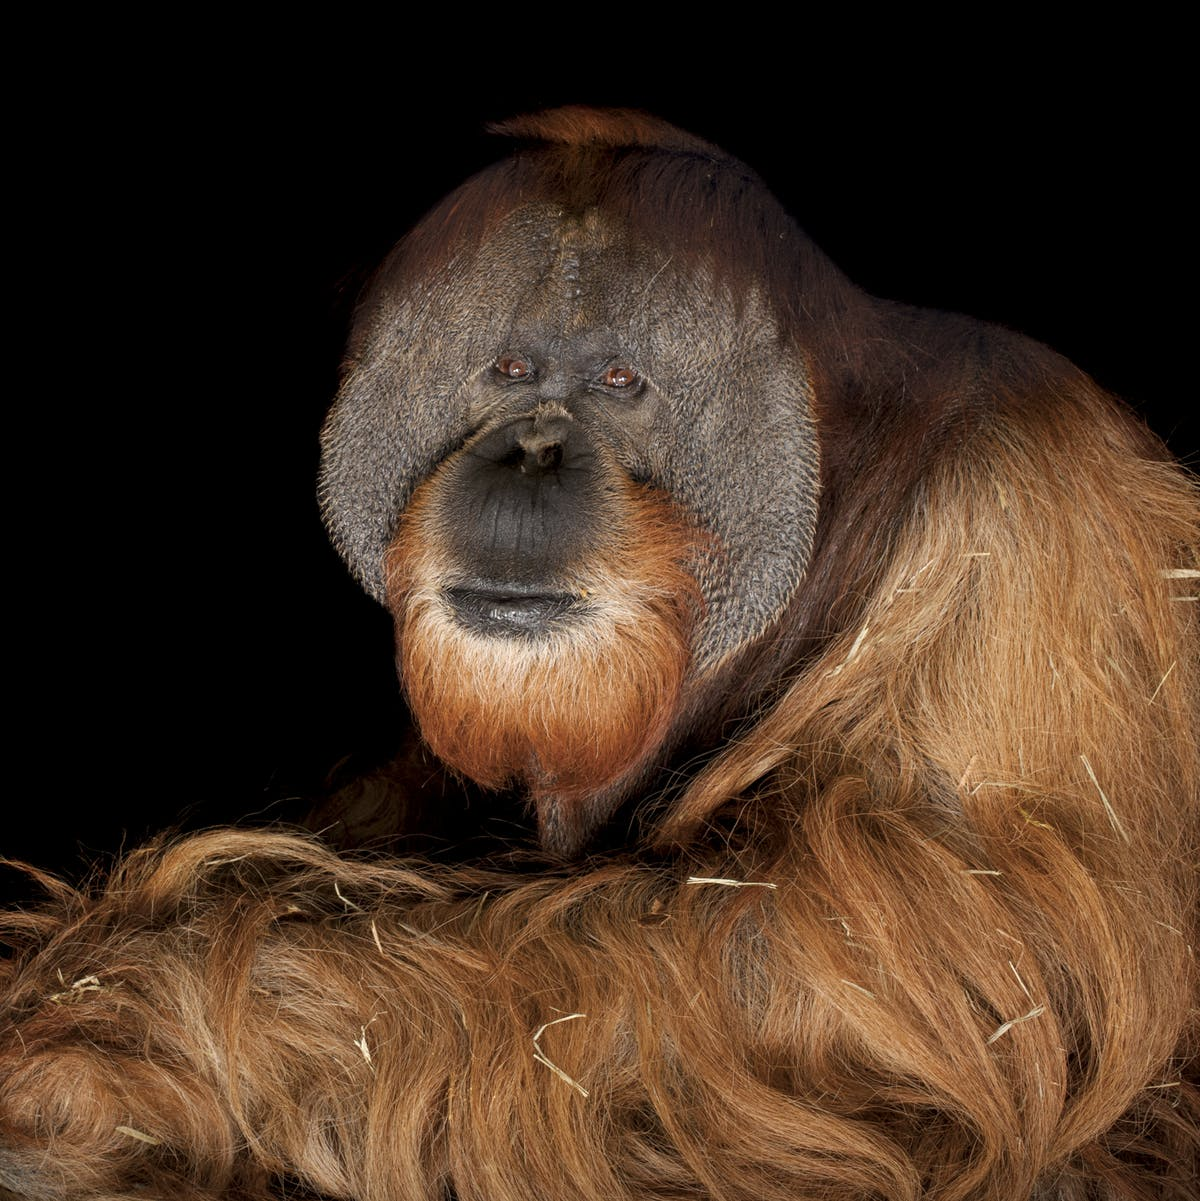 The amazing animal portraits by Joel Sartore reveal something truly special